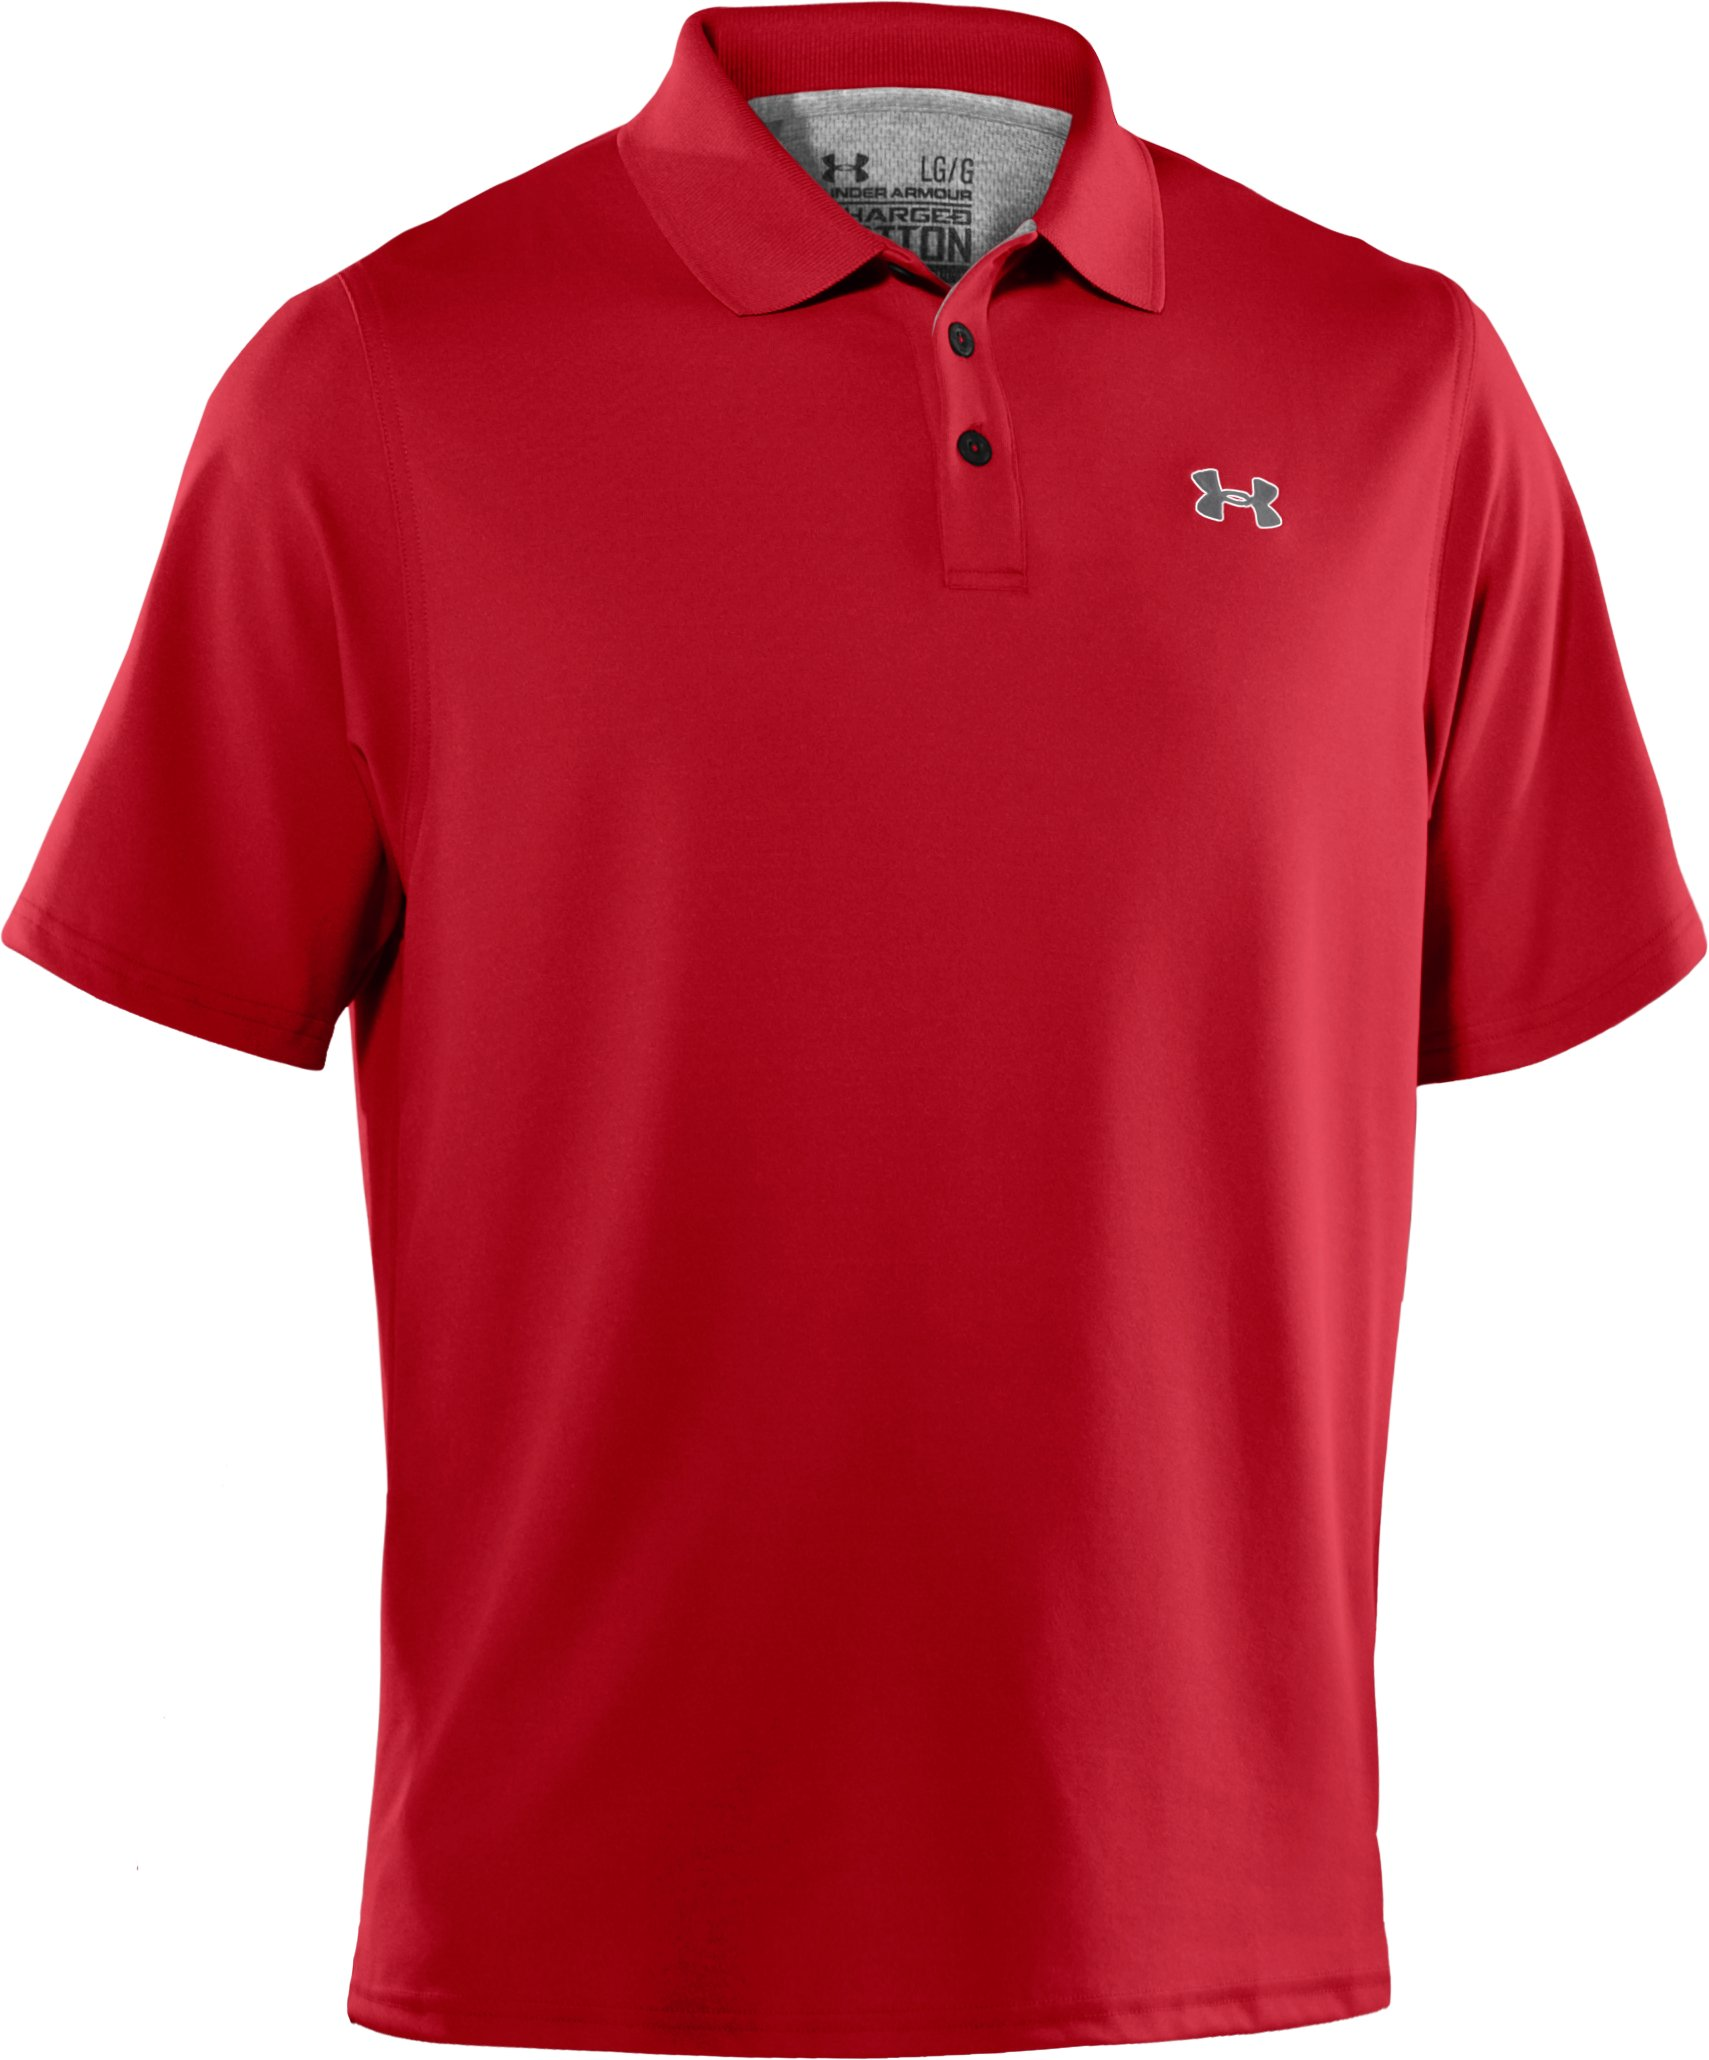 Men's Charged Cotton® Pique Polo, Red